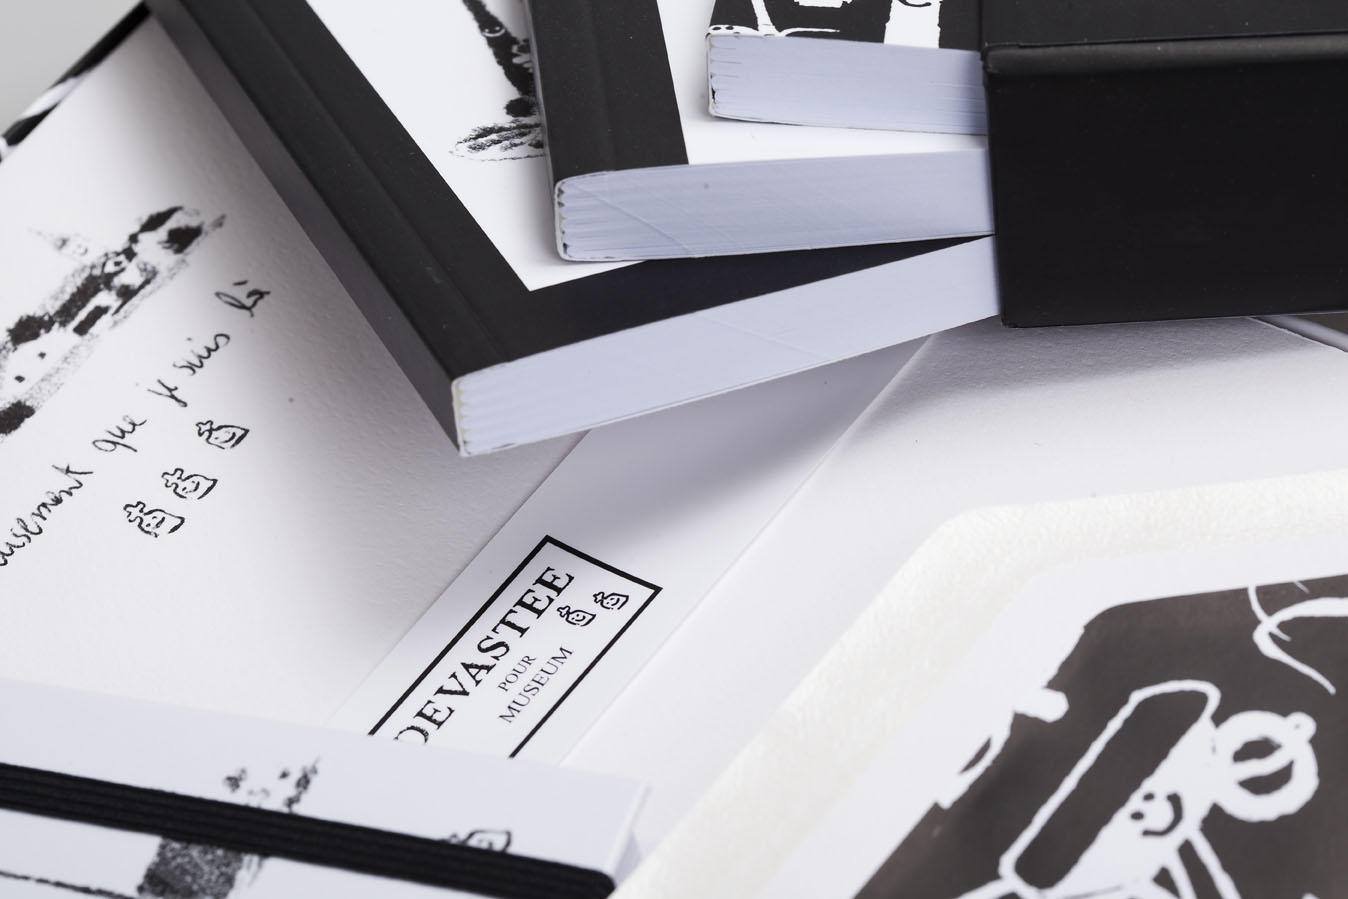 Devastee stationery collection by Rossi 1931